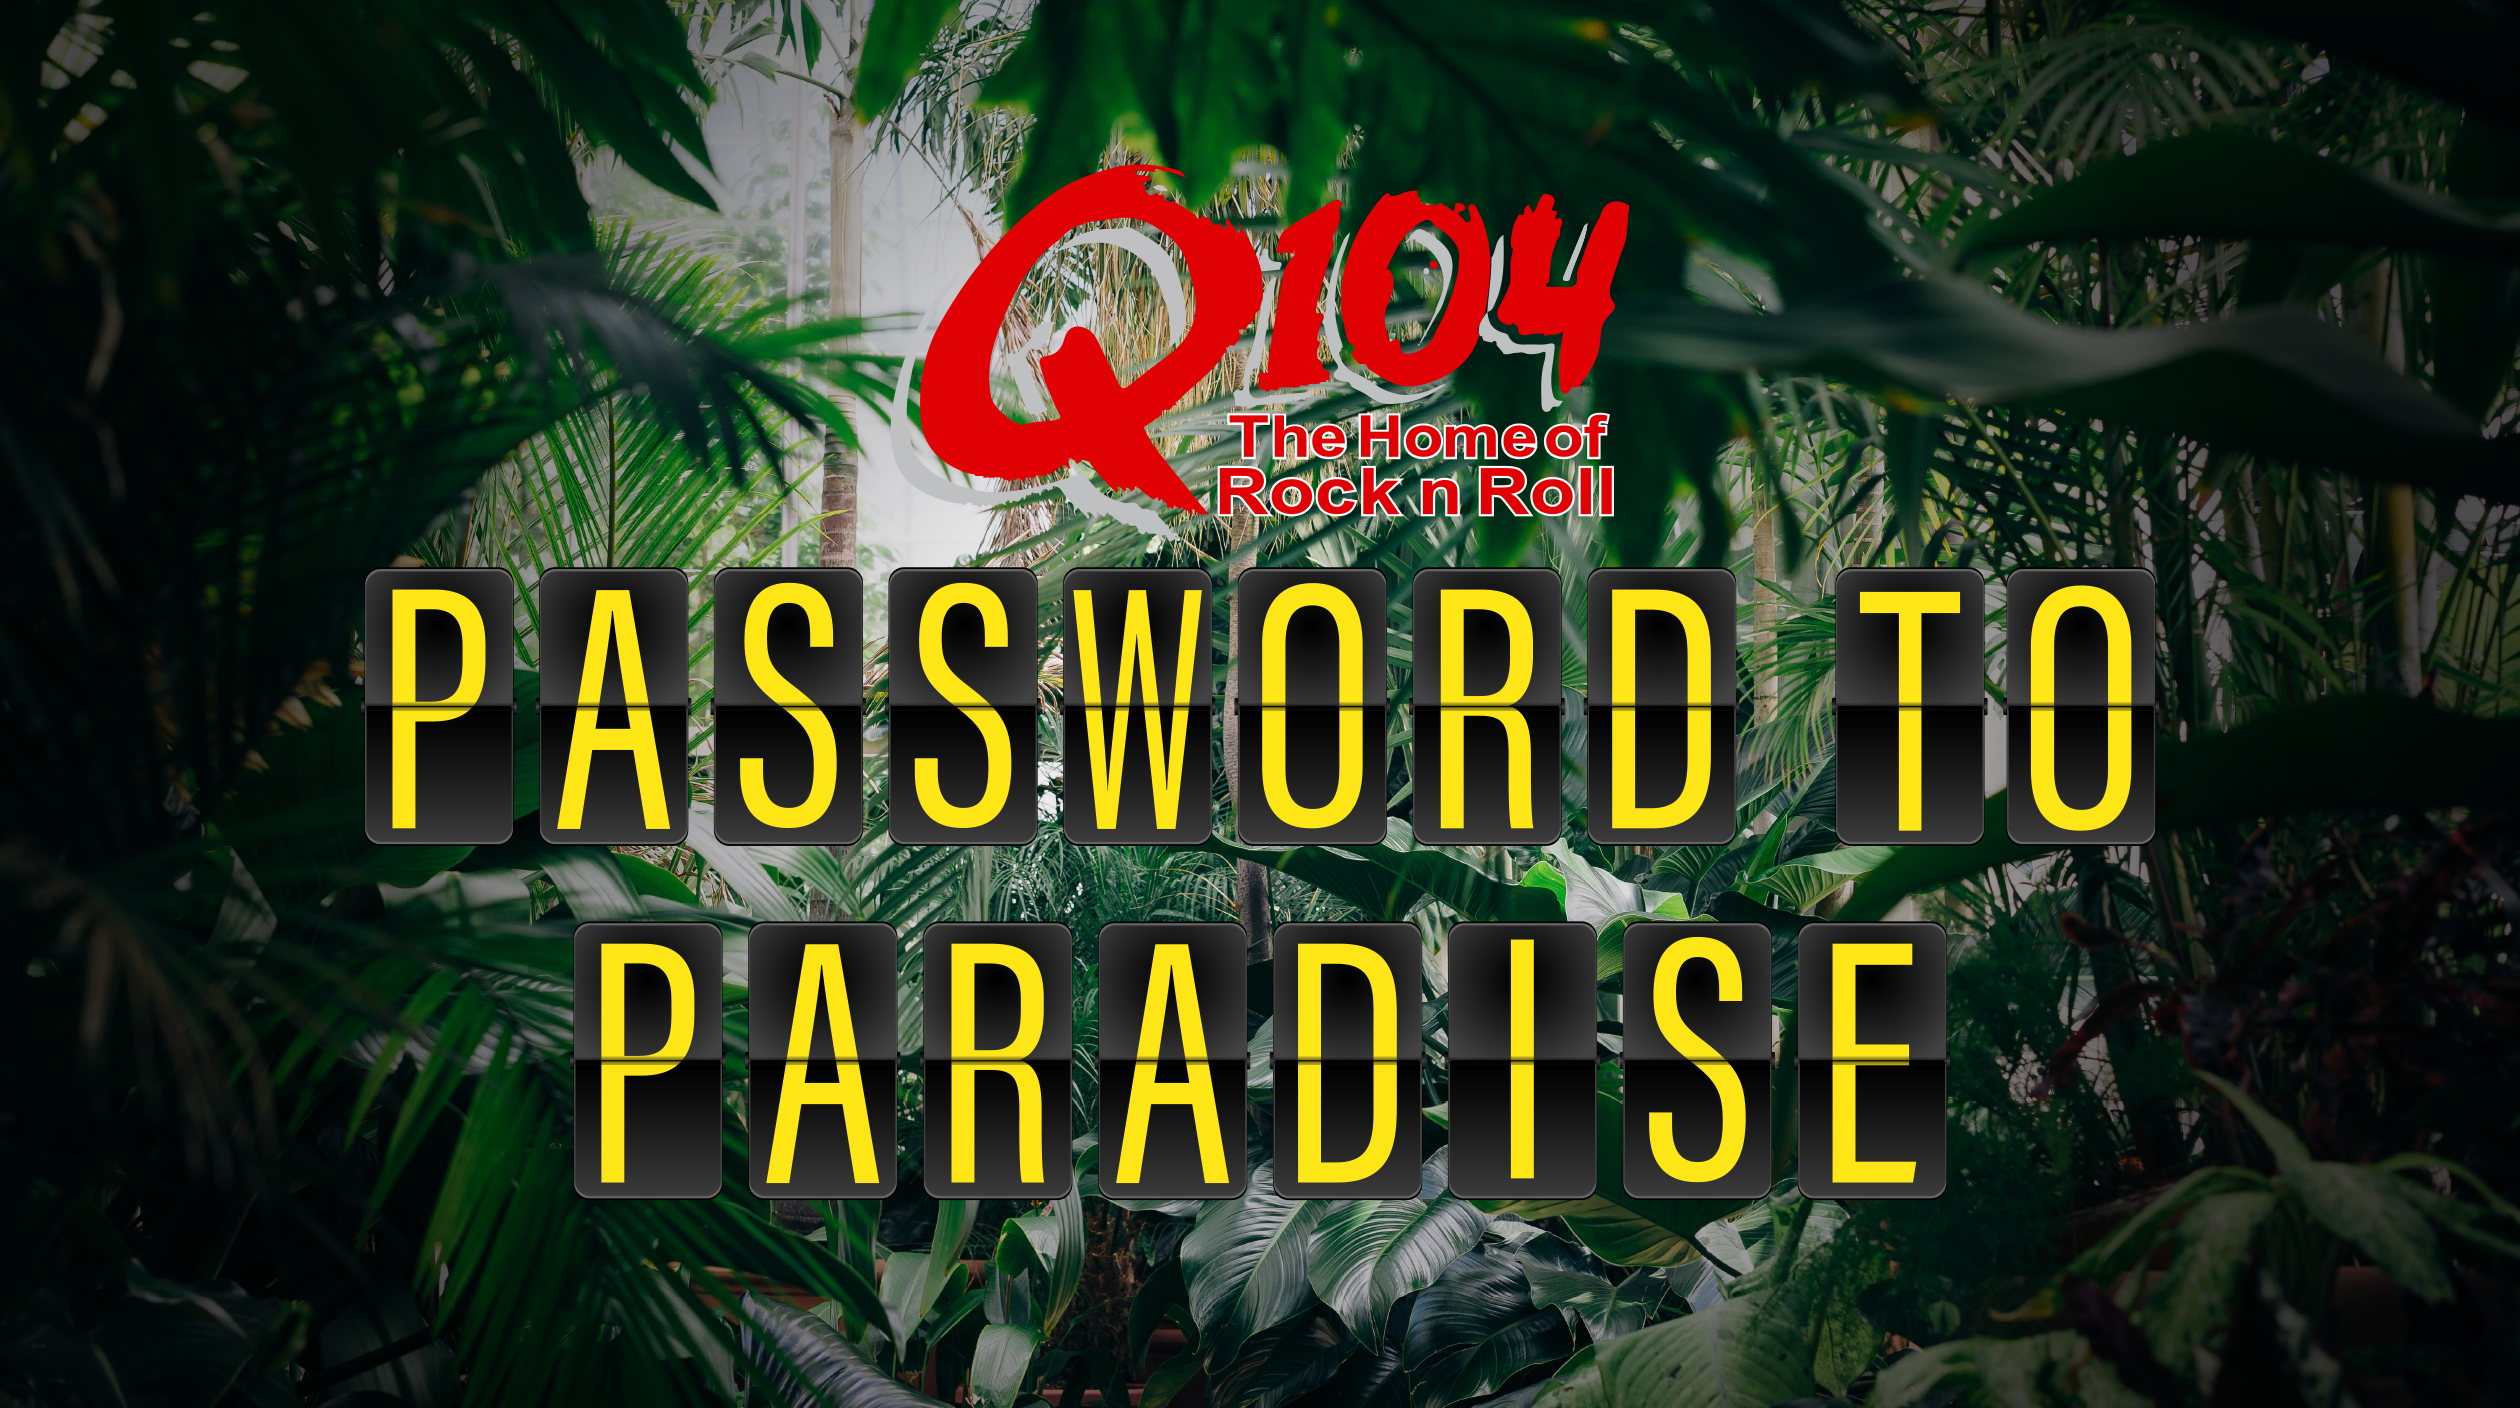 Feature: https://www.q104.ca/q104s-password-to-paradise/